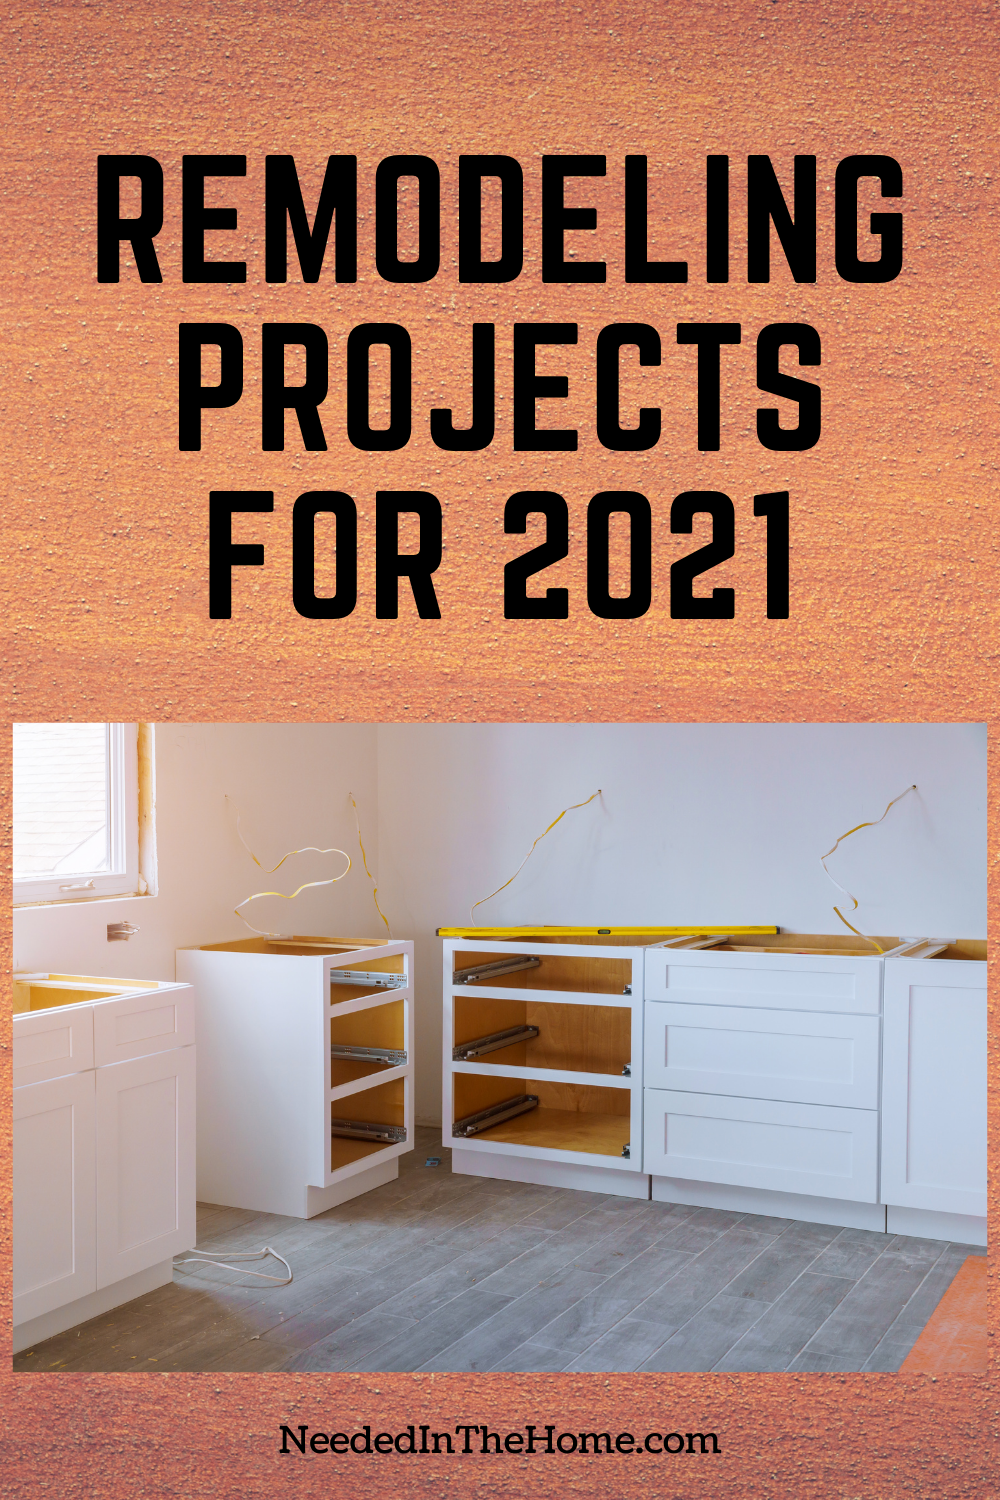 pinterest-pin-description remodeling projects for 2021 cupboards wiring flooring home office remodel neededinthehome